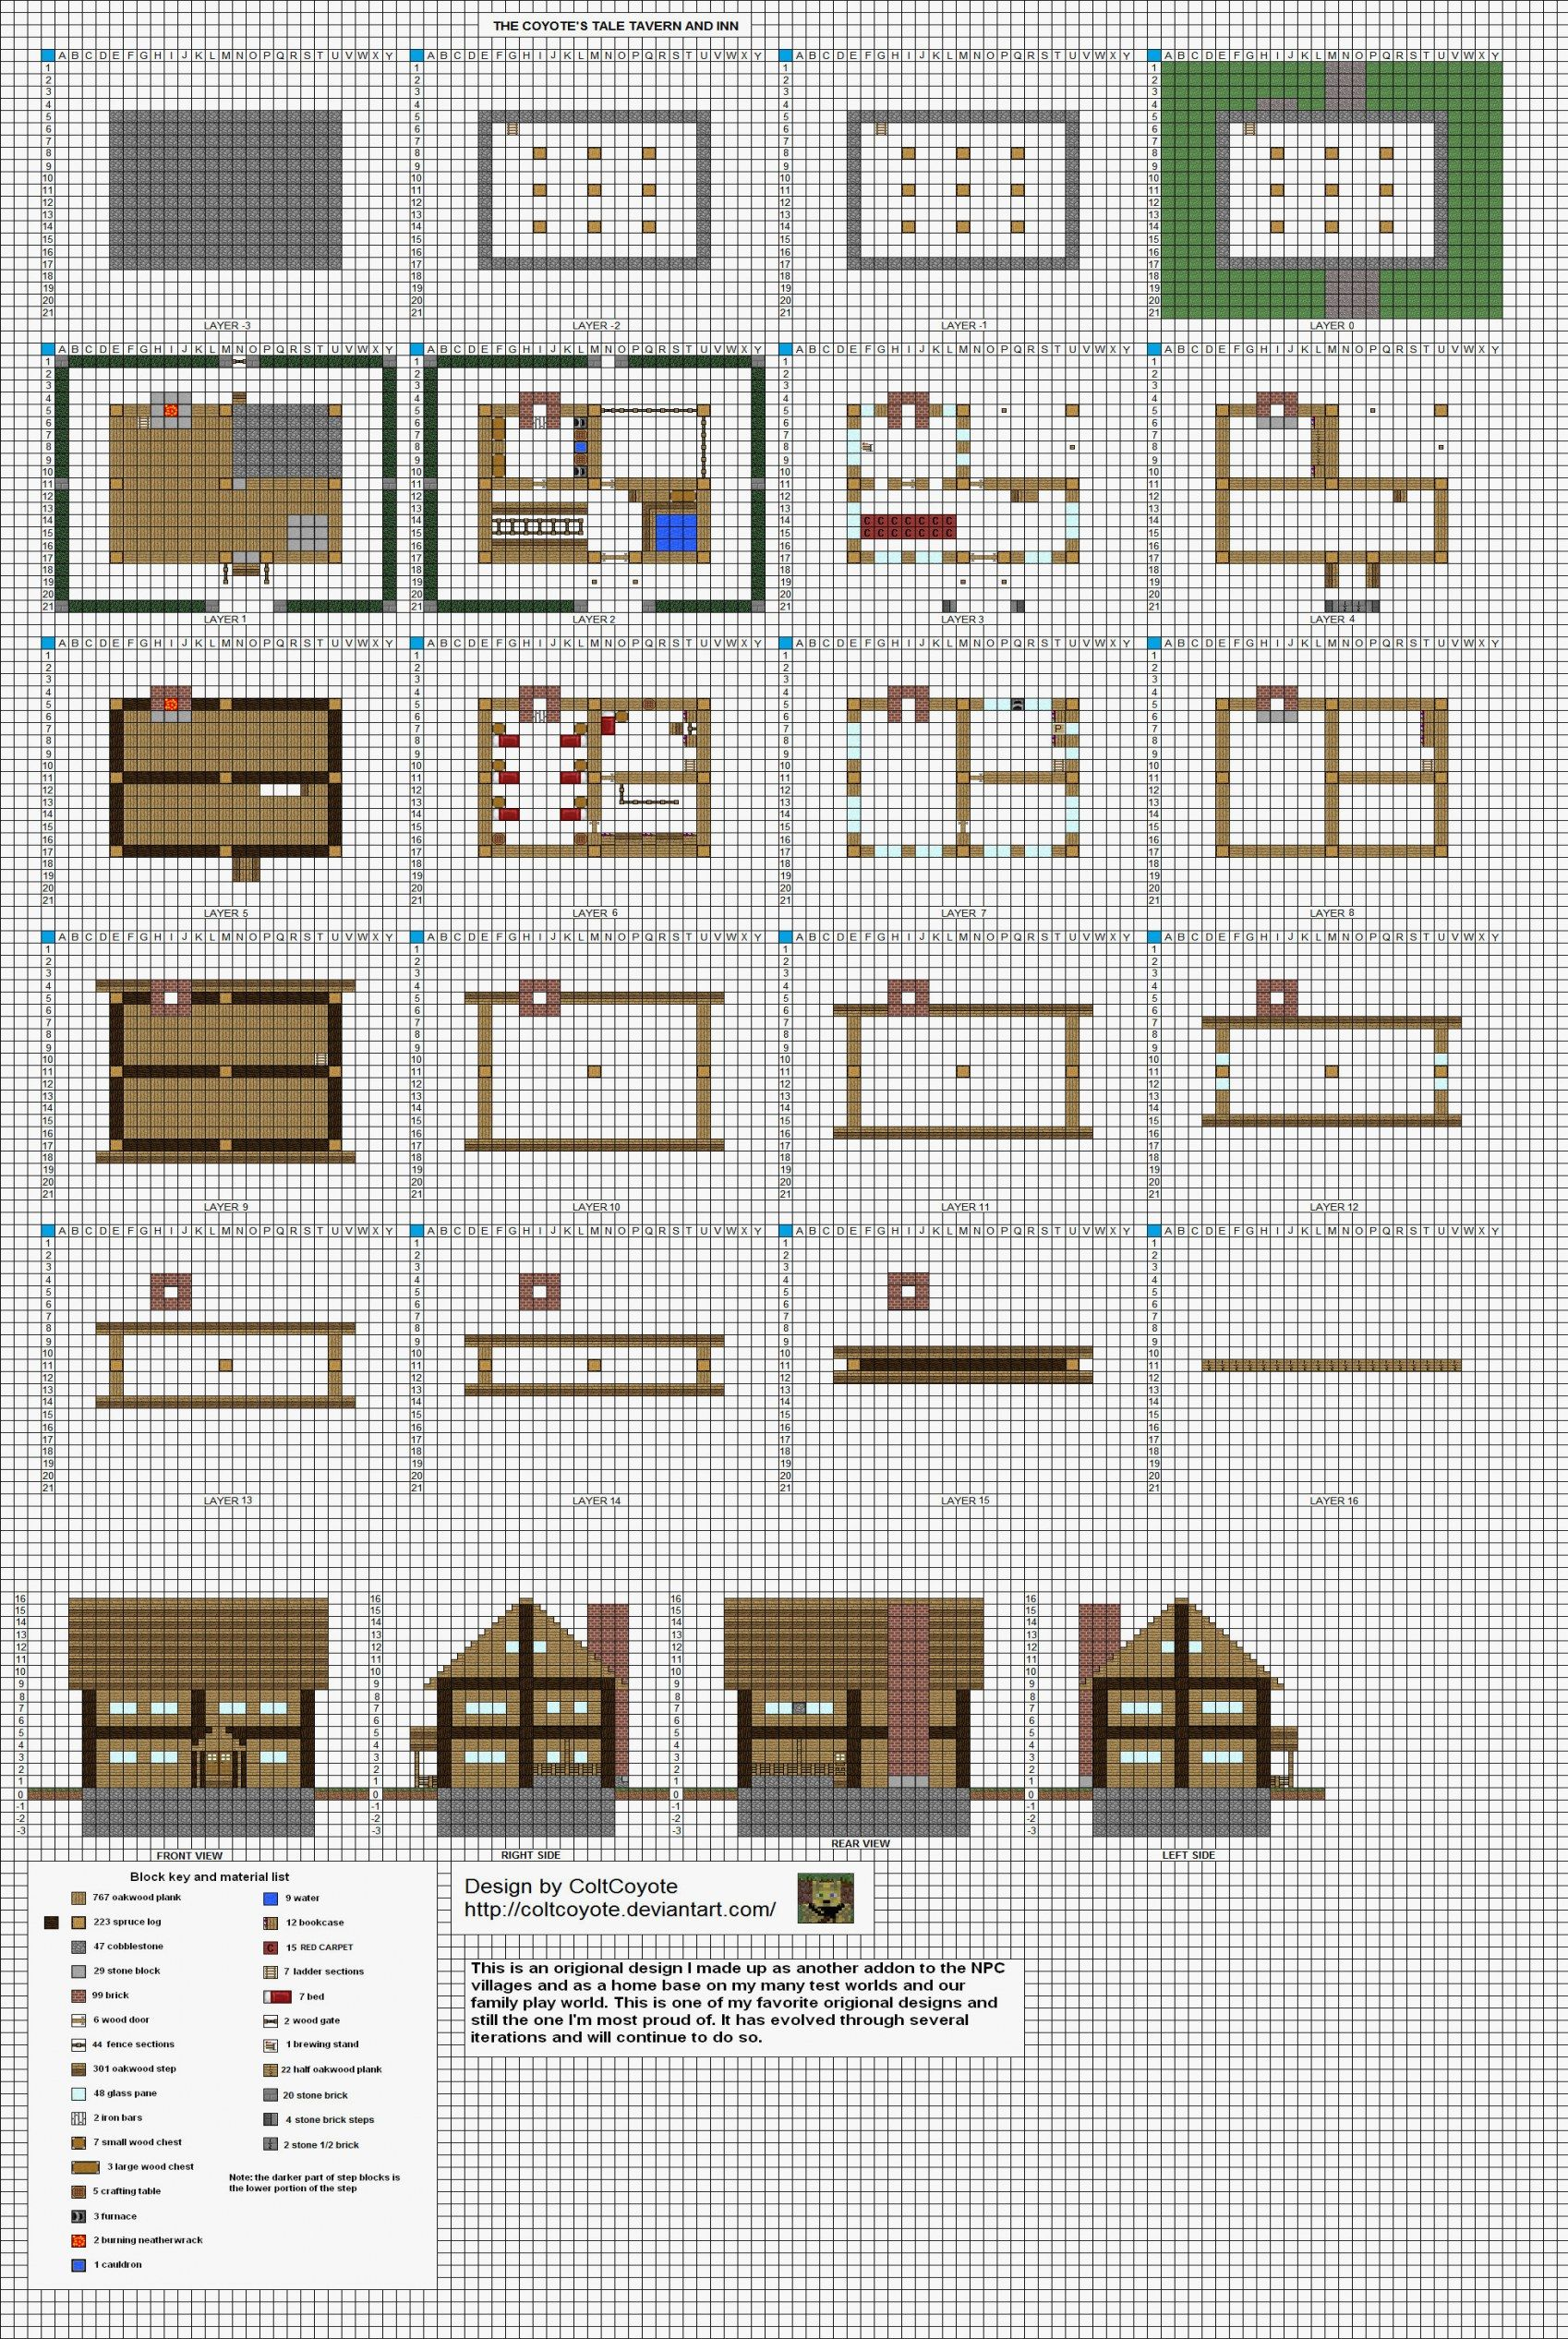 Awesome minecraft house ideas blueprints and review in